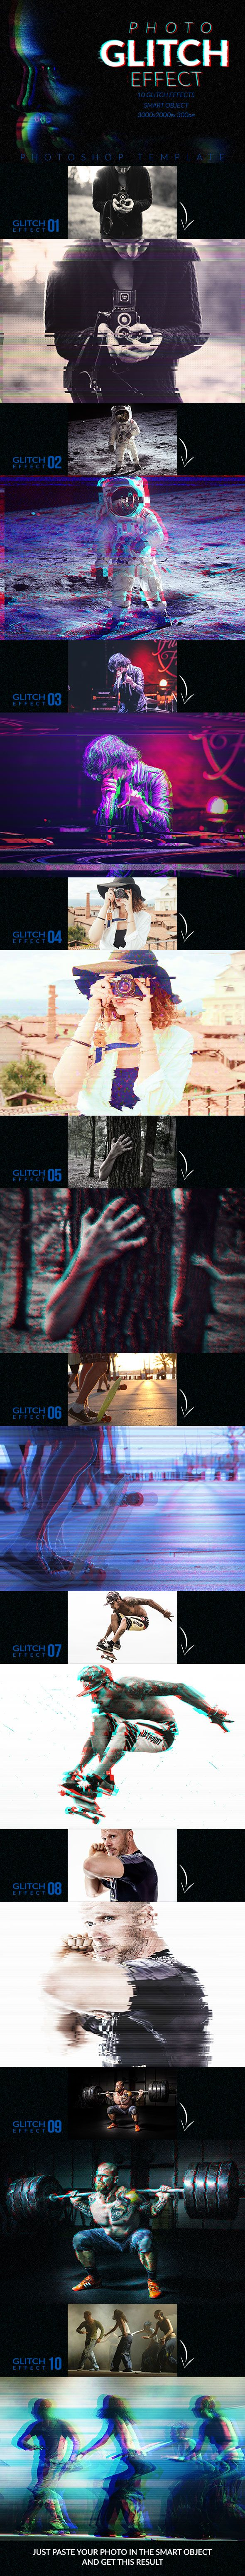 "Glitch Effect Creator The set ""Glitch Effect Creator"" includes 1PSD file with 10 Groups Glitch Effects, 3000×2000px , 300dpi, RGB, 100% layered. Put your photo inside the Smart Object and Glitch Effect Creator operation is performed."